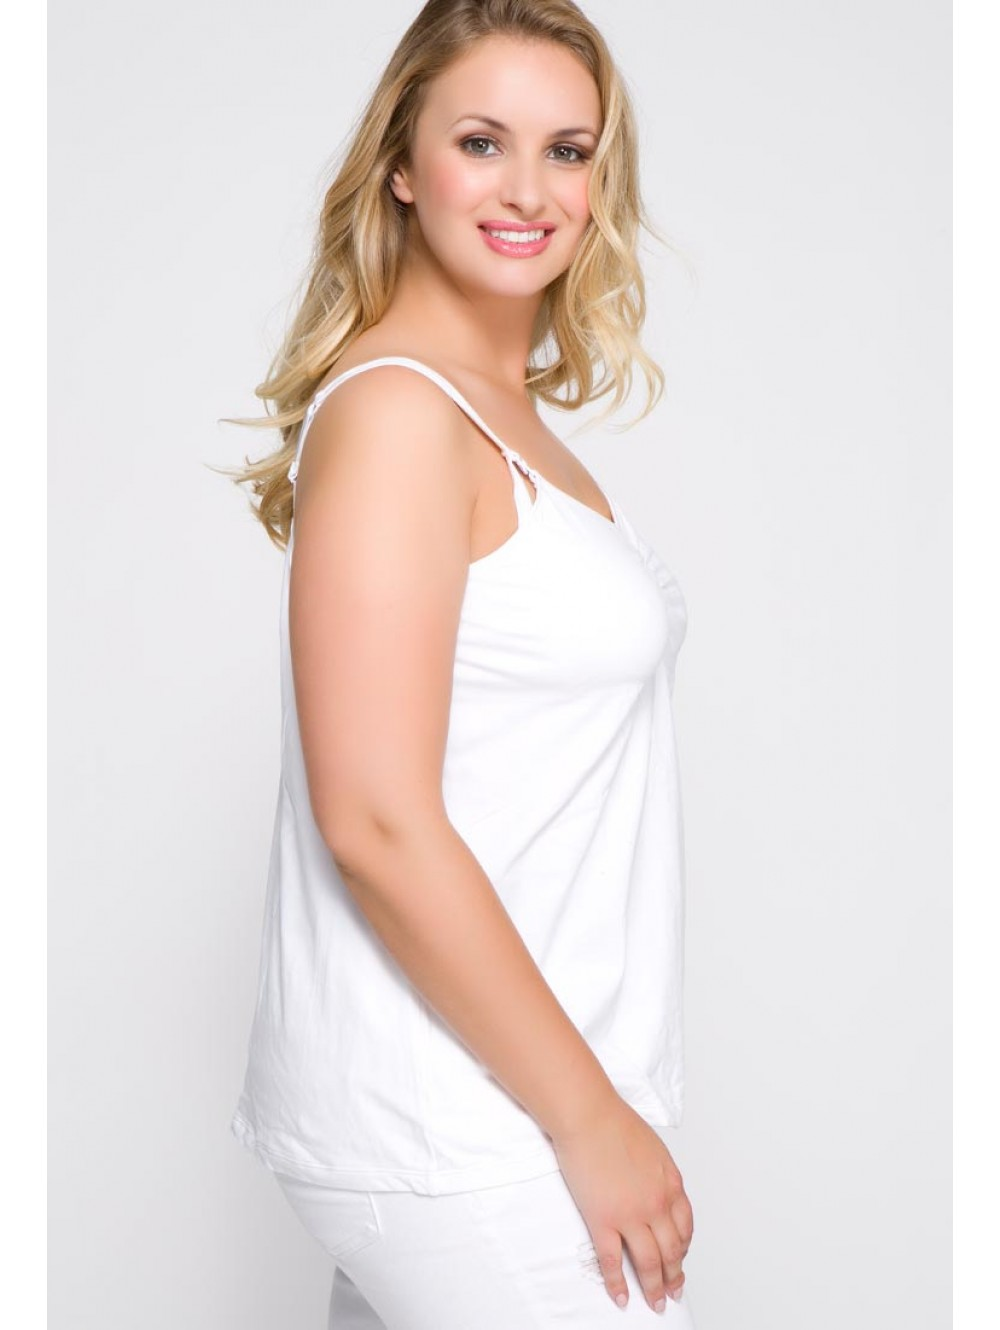 la-leche-league-shirred-nursing-tank-4242-white-3.jpg